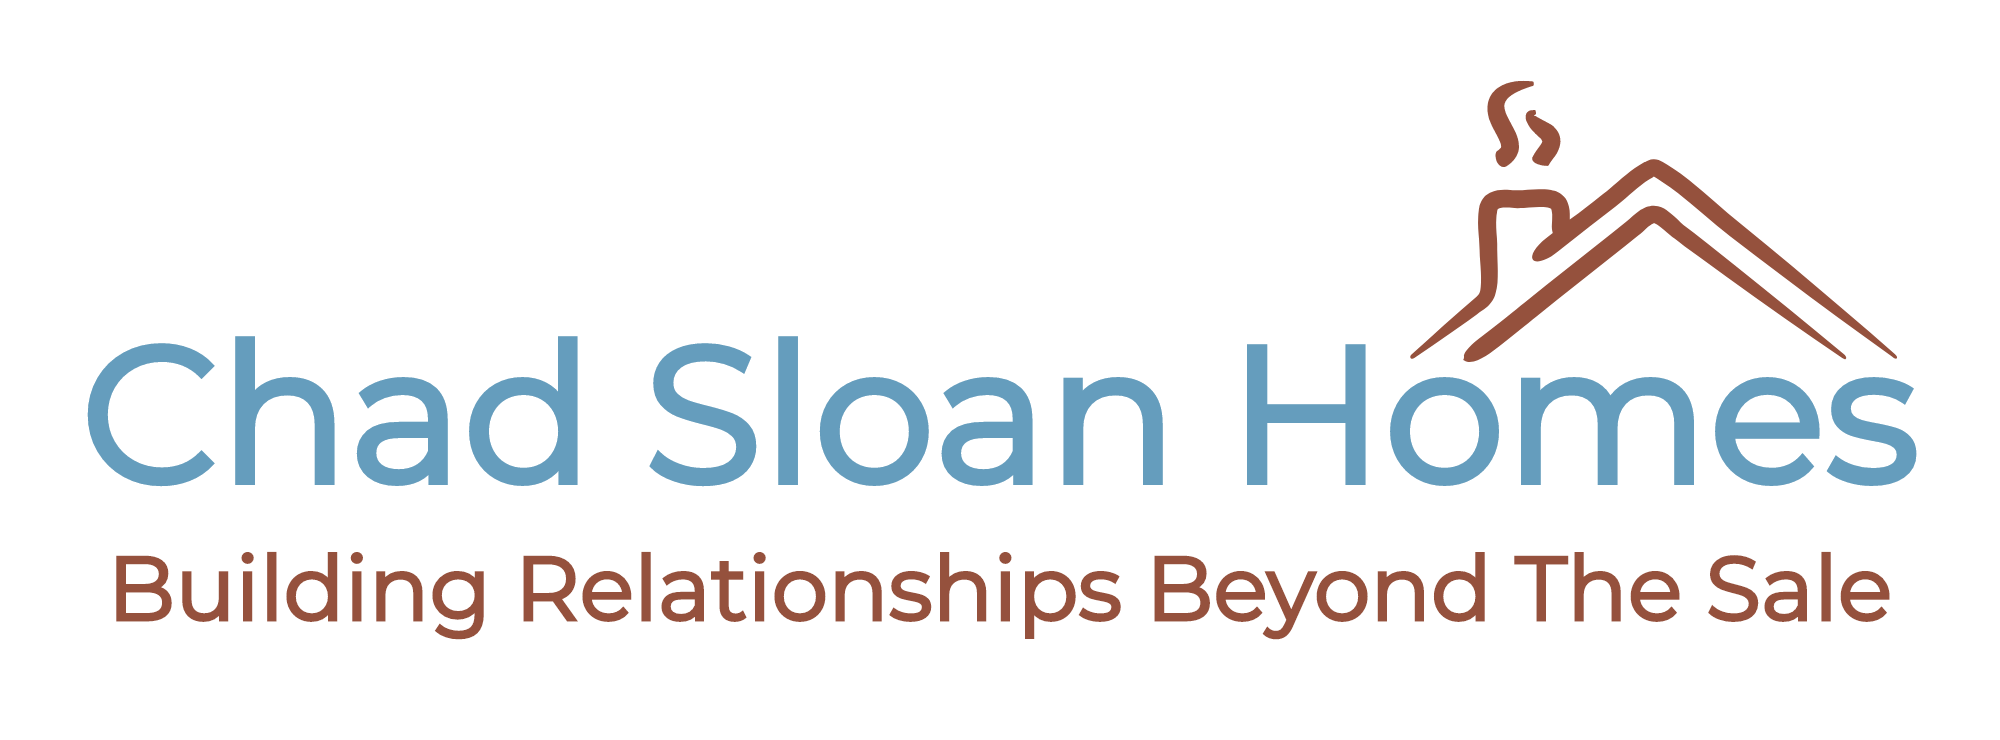 Chad Sloan Homes